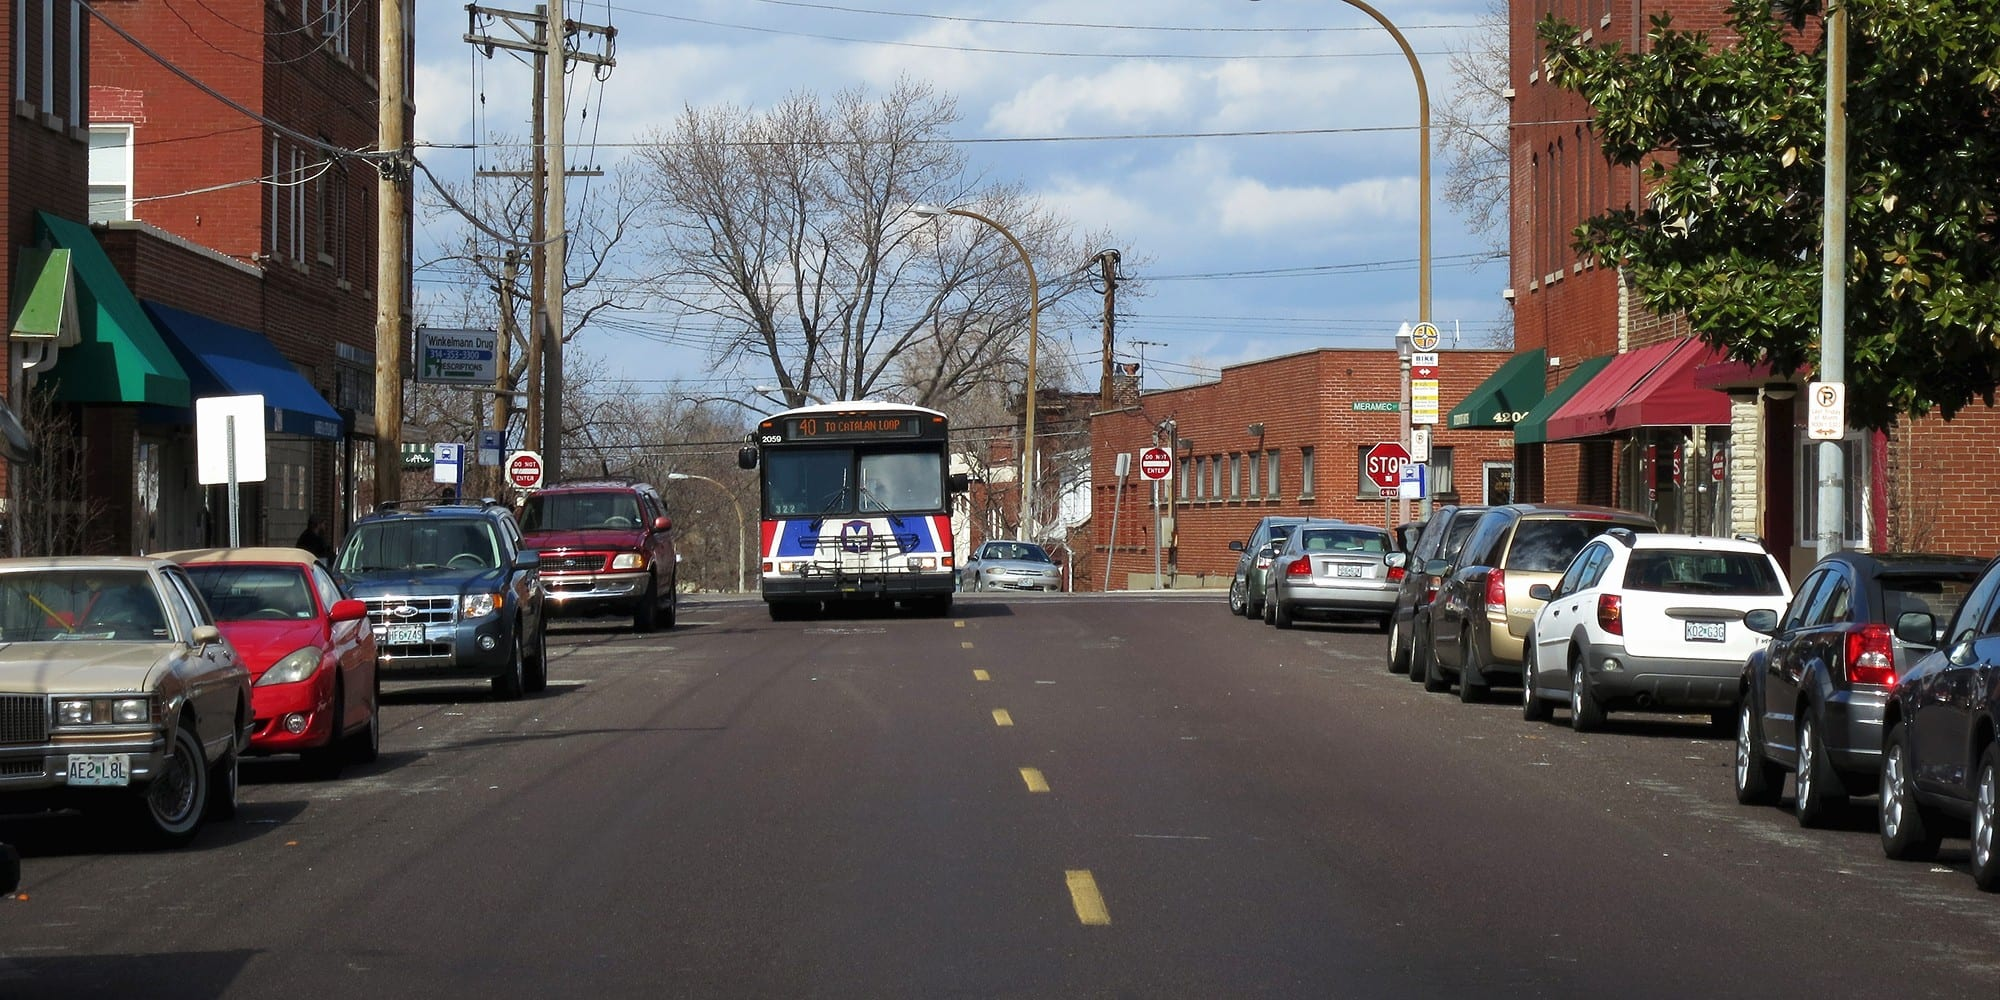 The 43 MetroBus heading south on Virginia. Photo by Paul Sableman.